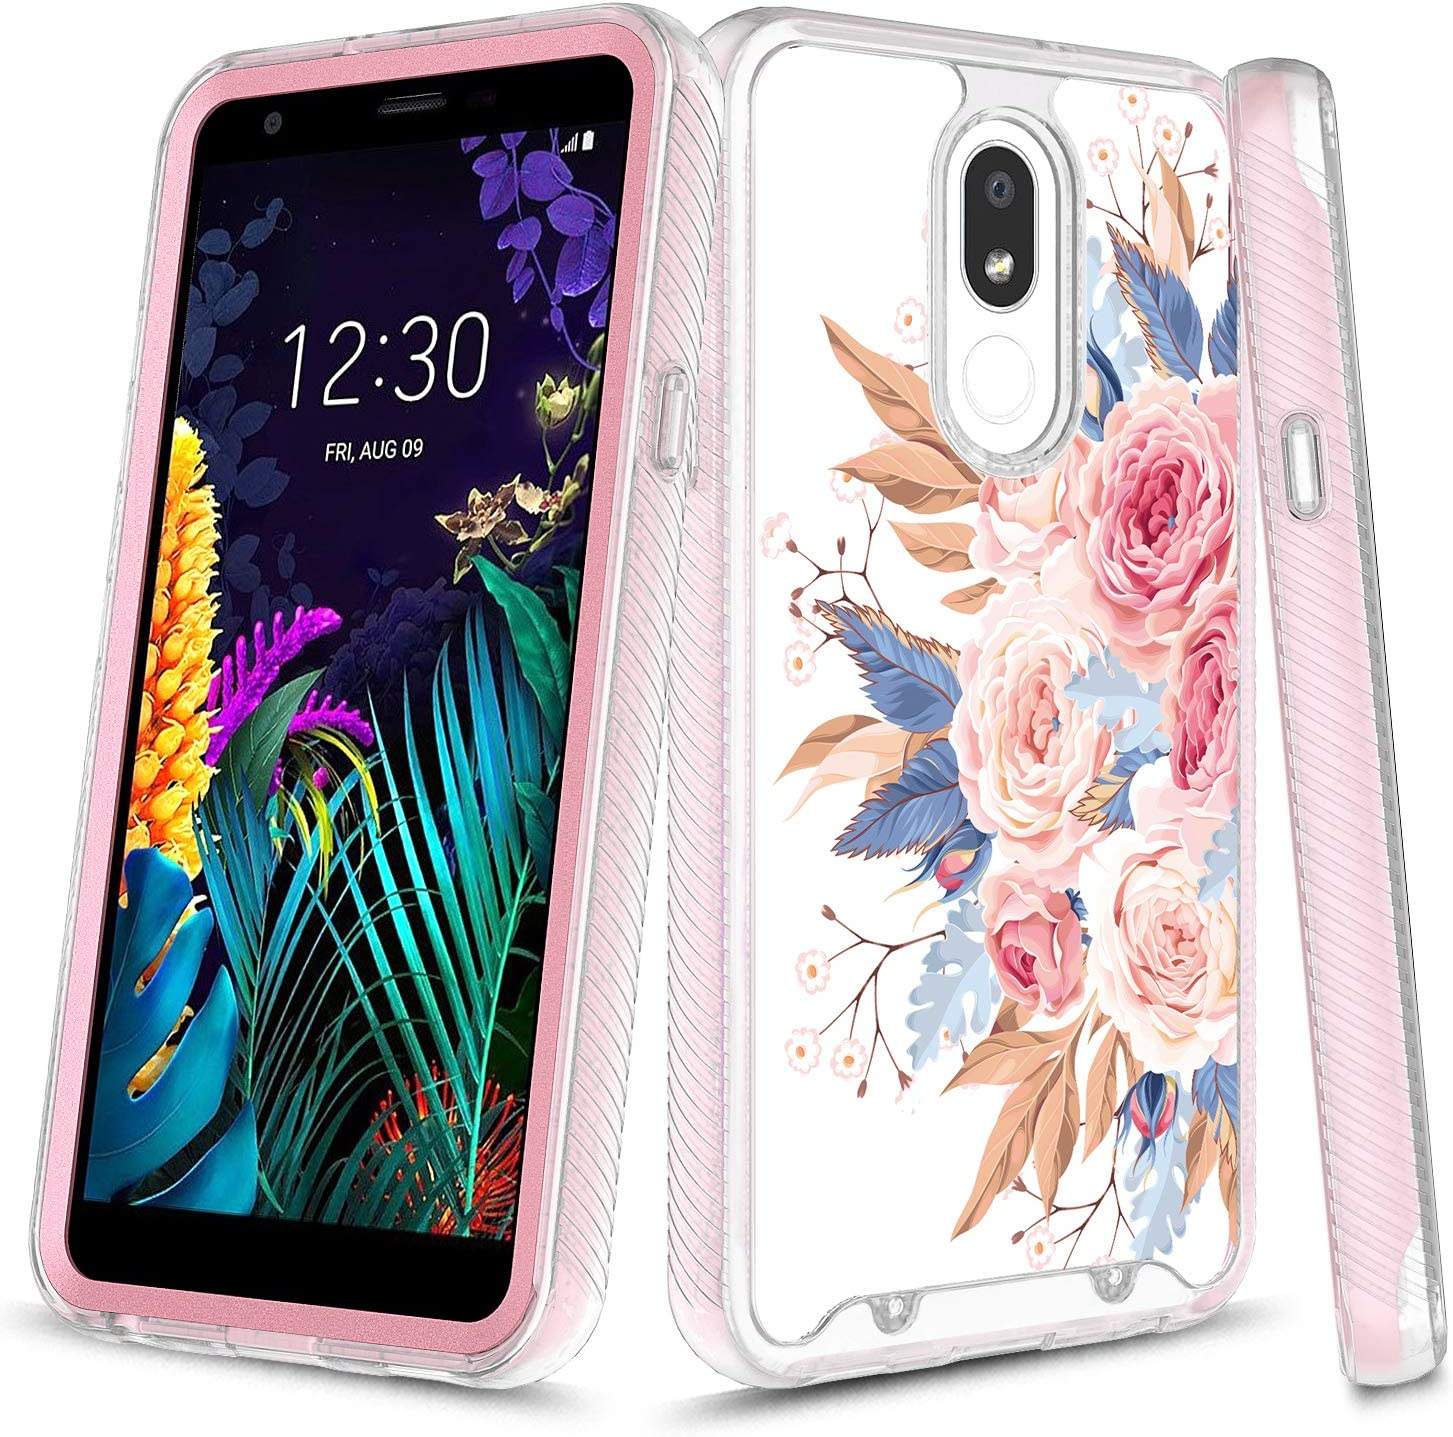 LG Aristo 4+ Case, LG Arena 2 Case, LG Escape Plus Case, LG Journey LTE Case, LG Prime 2 Case, LG Tribute Royal Case, Onyxii Graphic Rugged Clear Hybrid Bumper Case for LG X320 (Pink Flower)